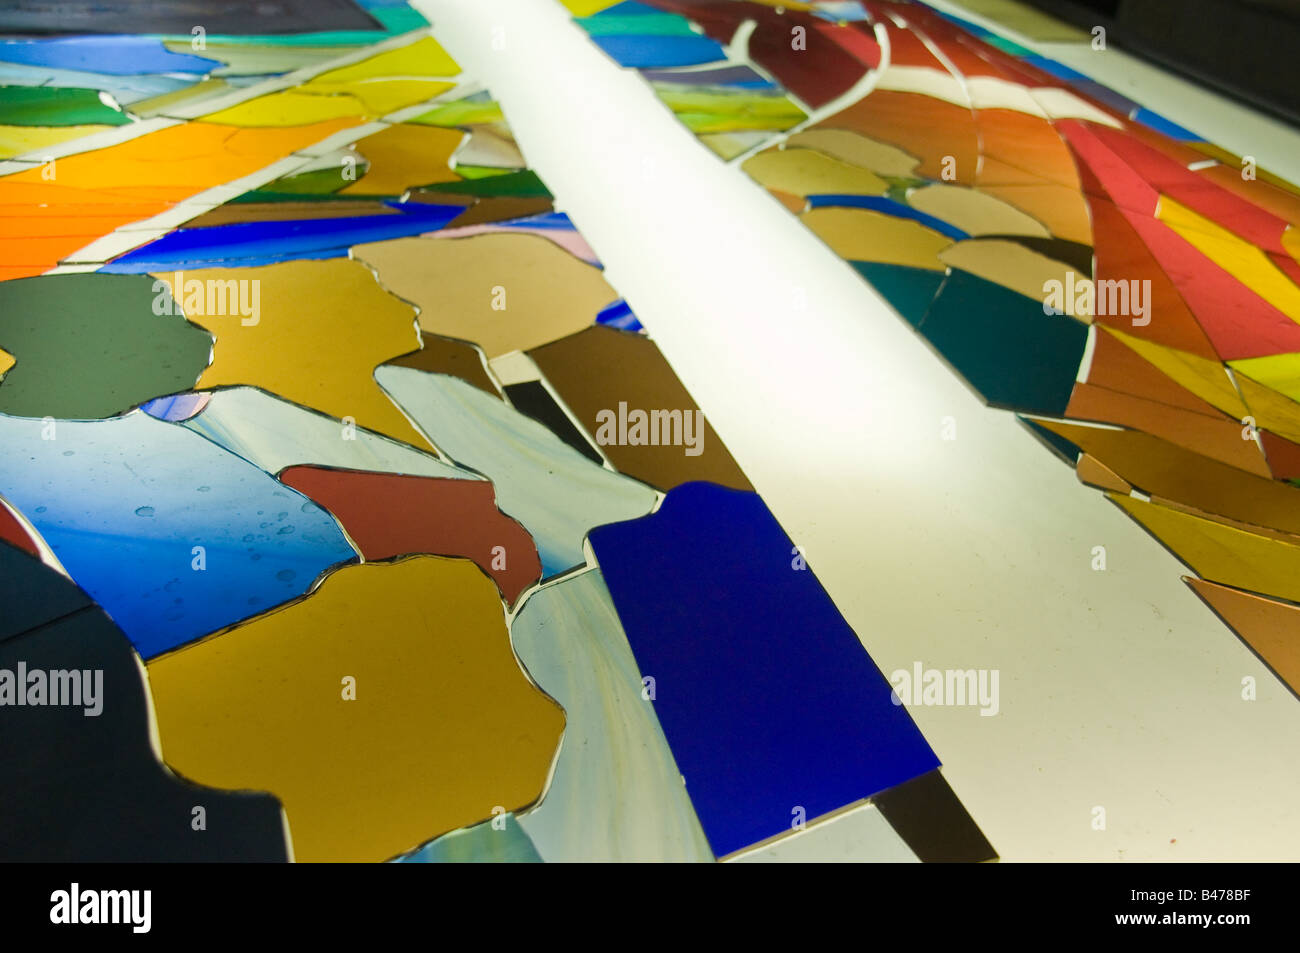 New stained glass window under construction - glass panels have been cut to size and arranged in position - Stock Image